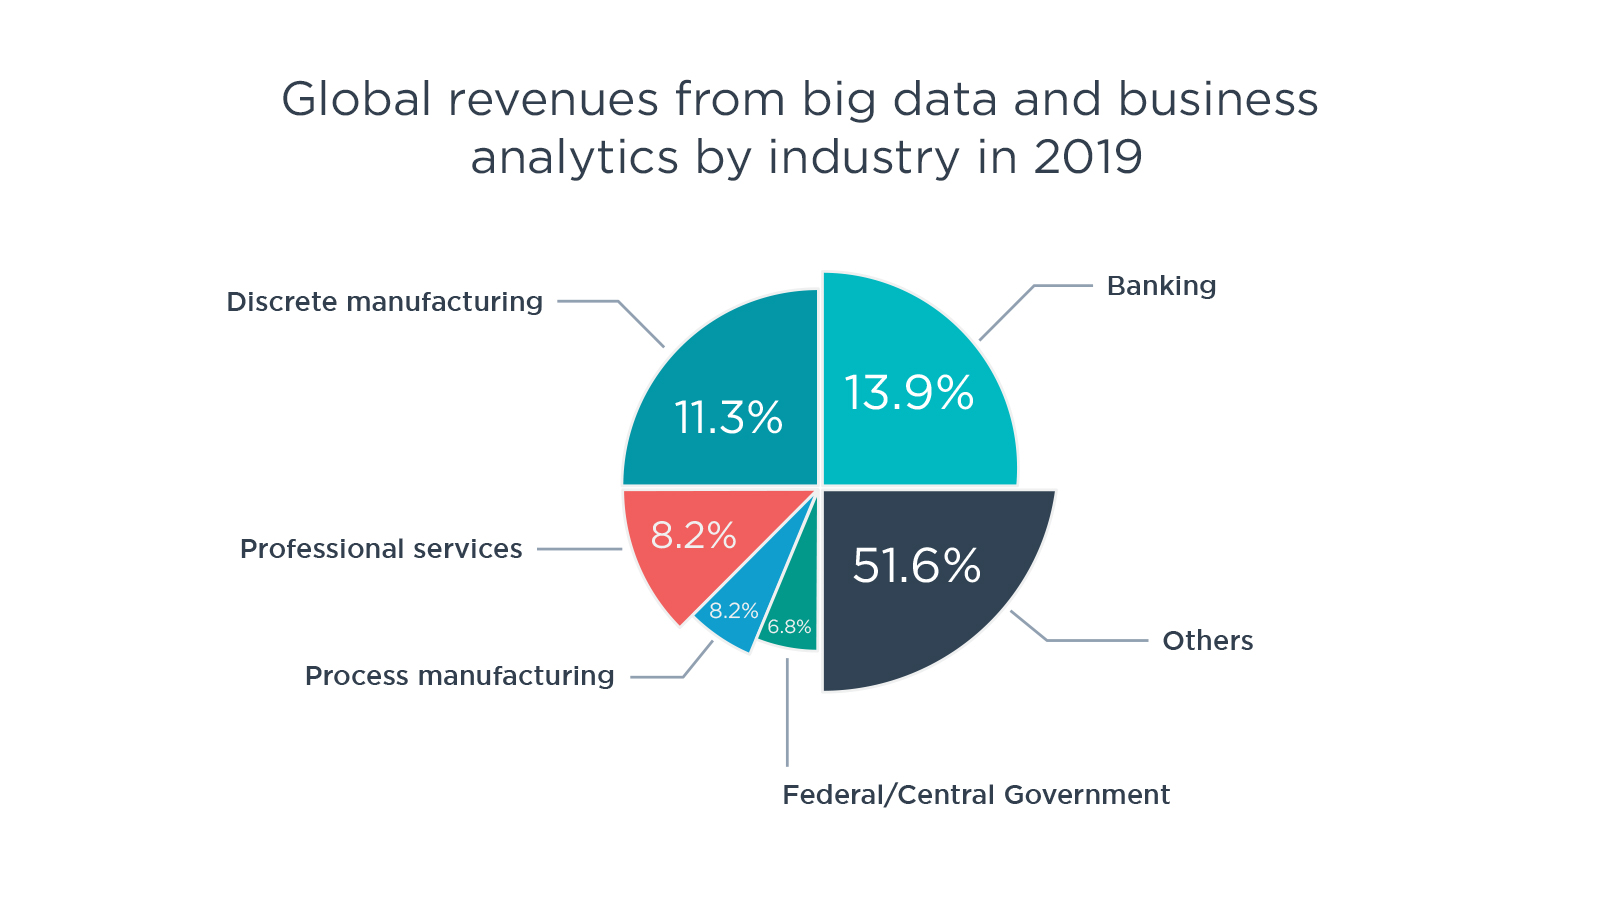 Global revenues from big data and business analytics by industry in 2019